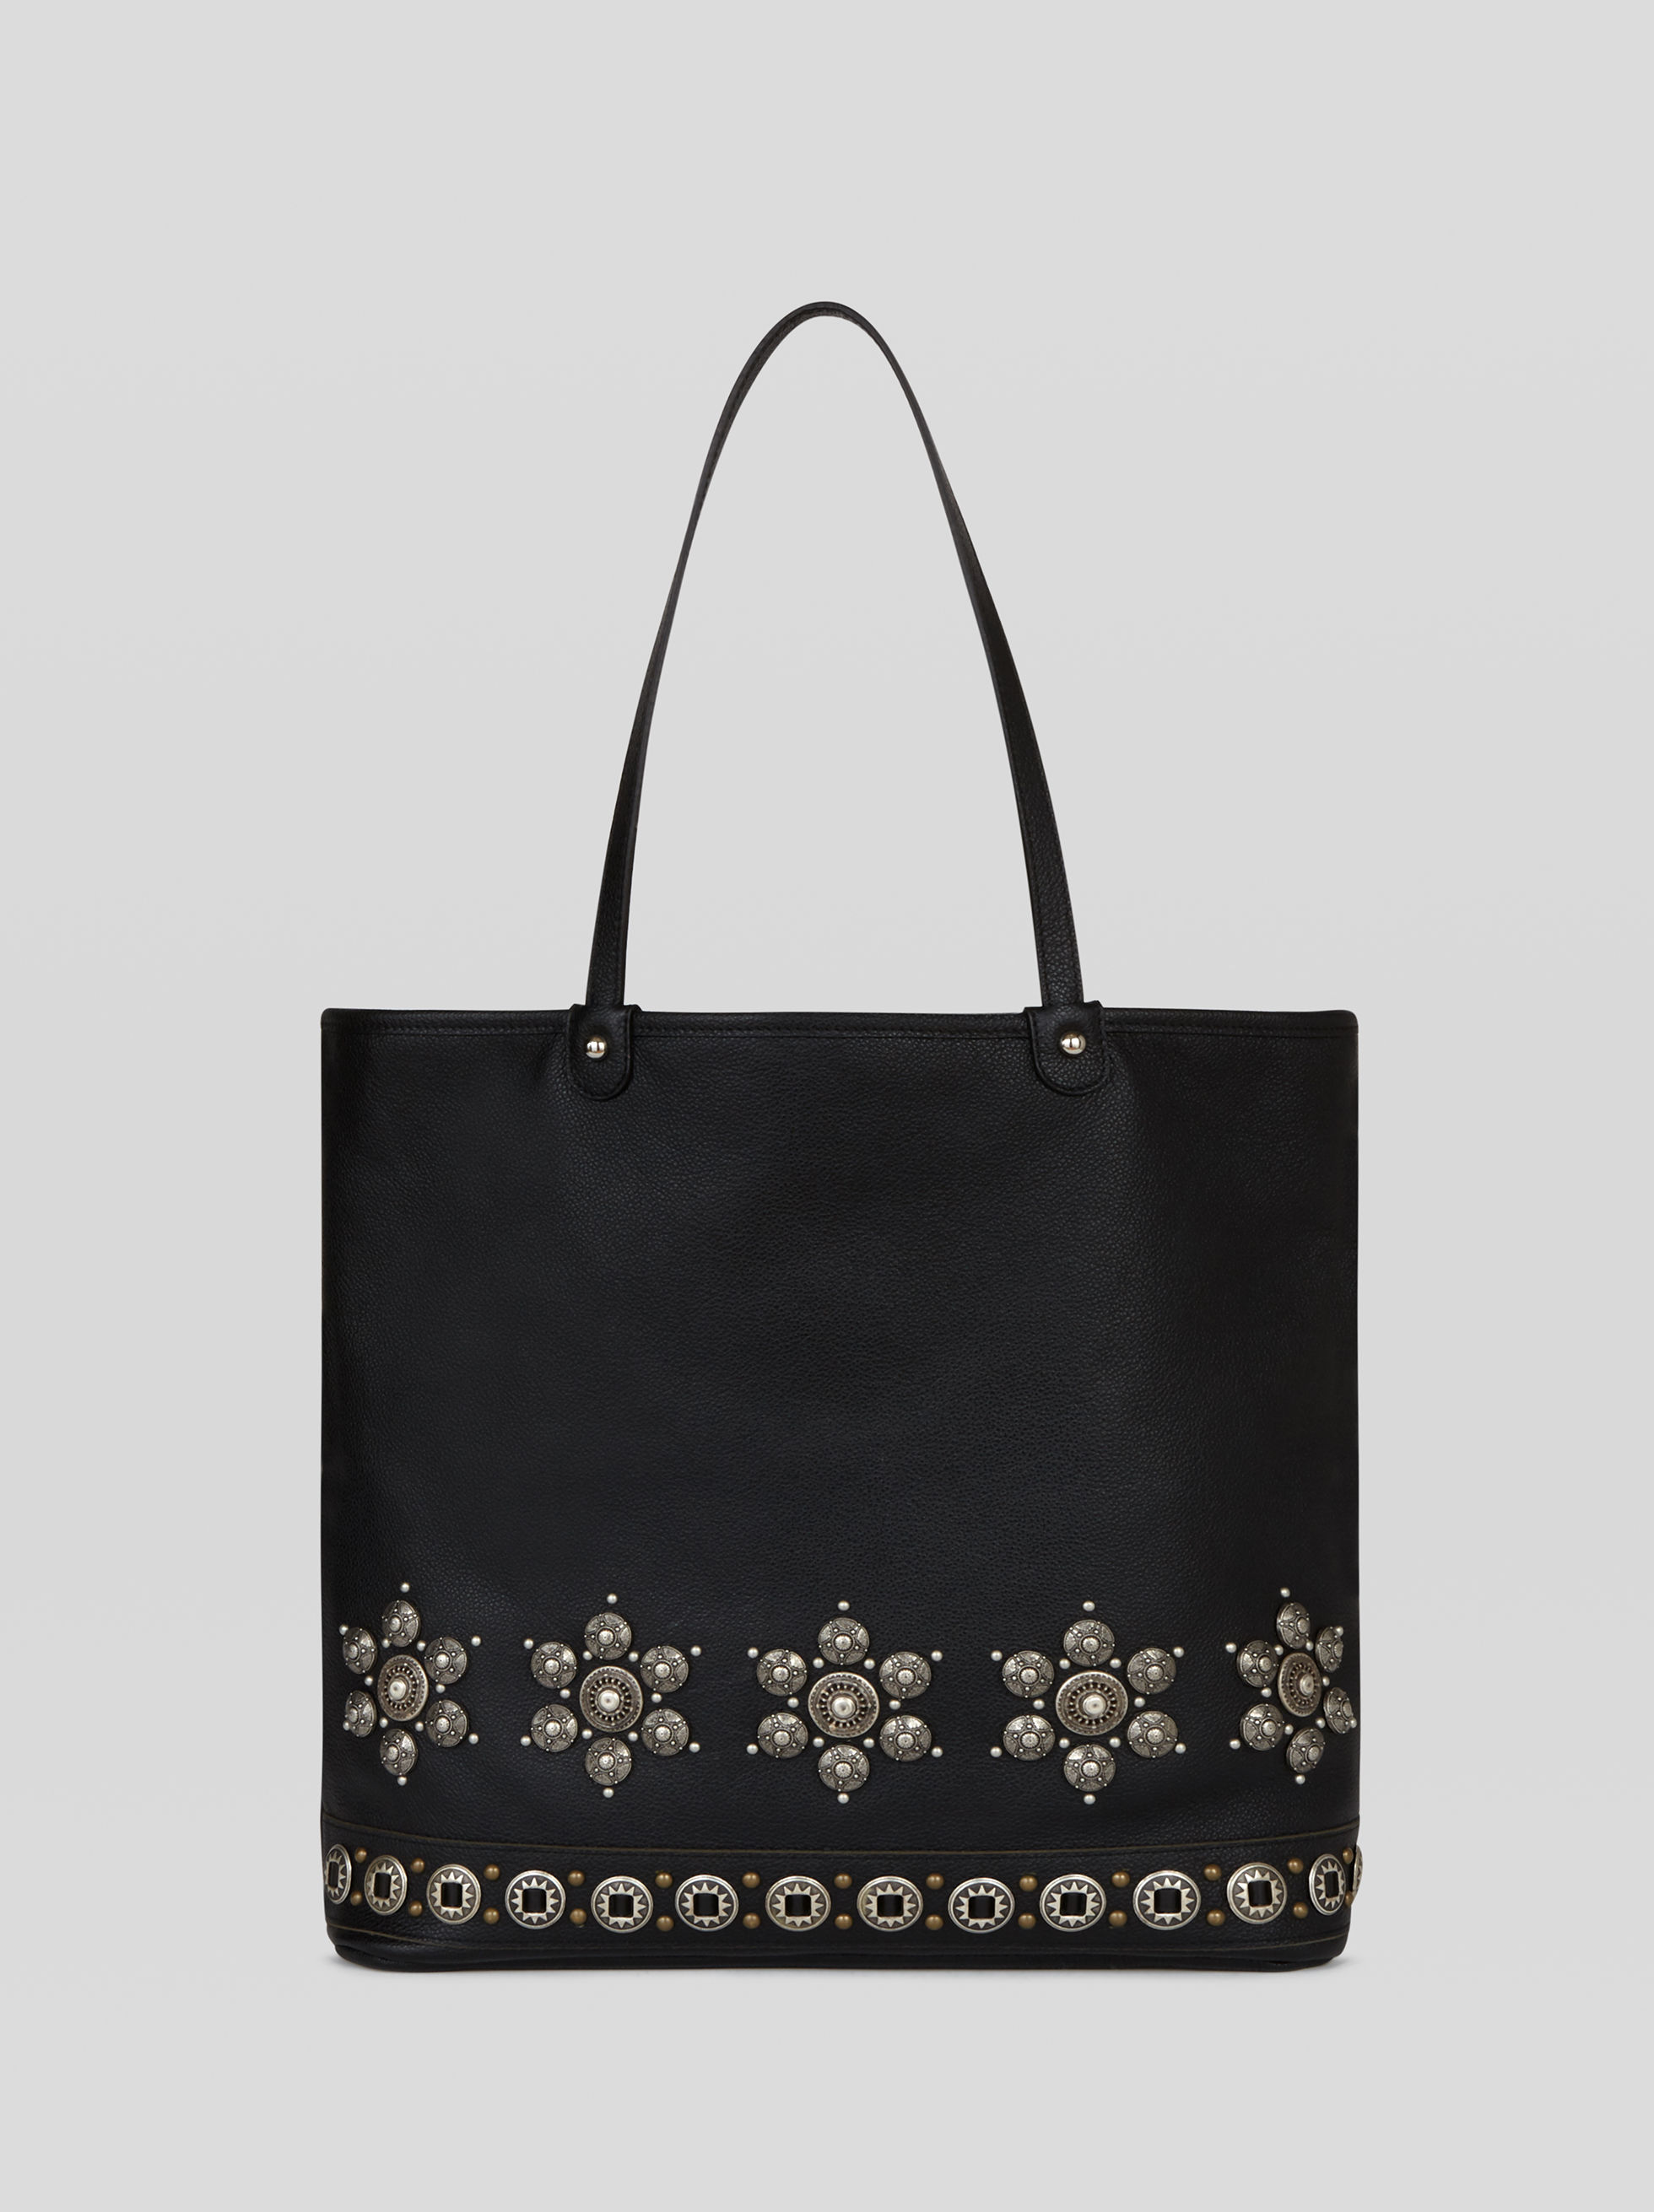 SHOPPING BAG WITH STUDS